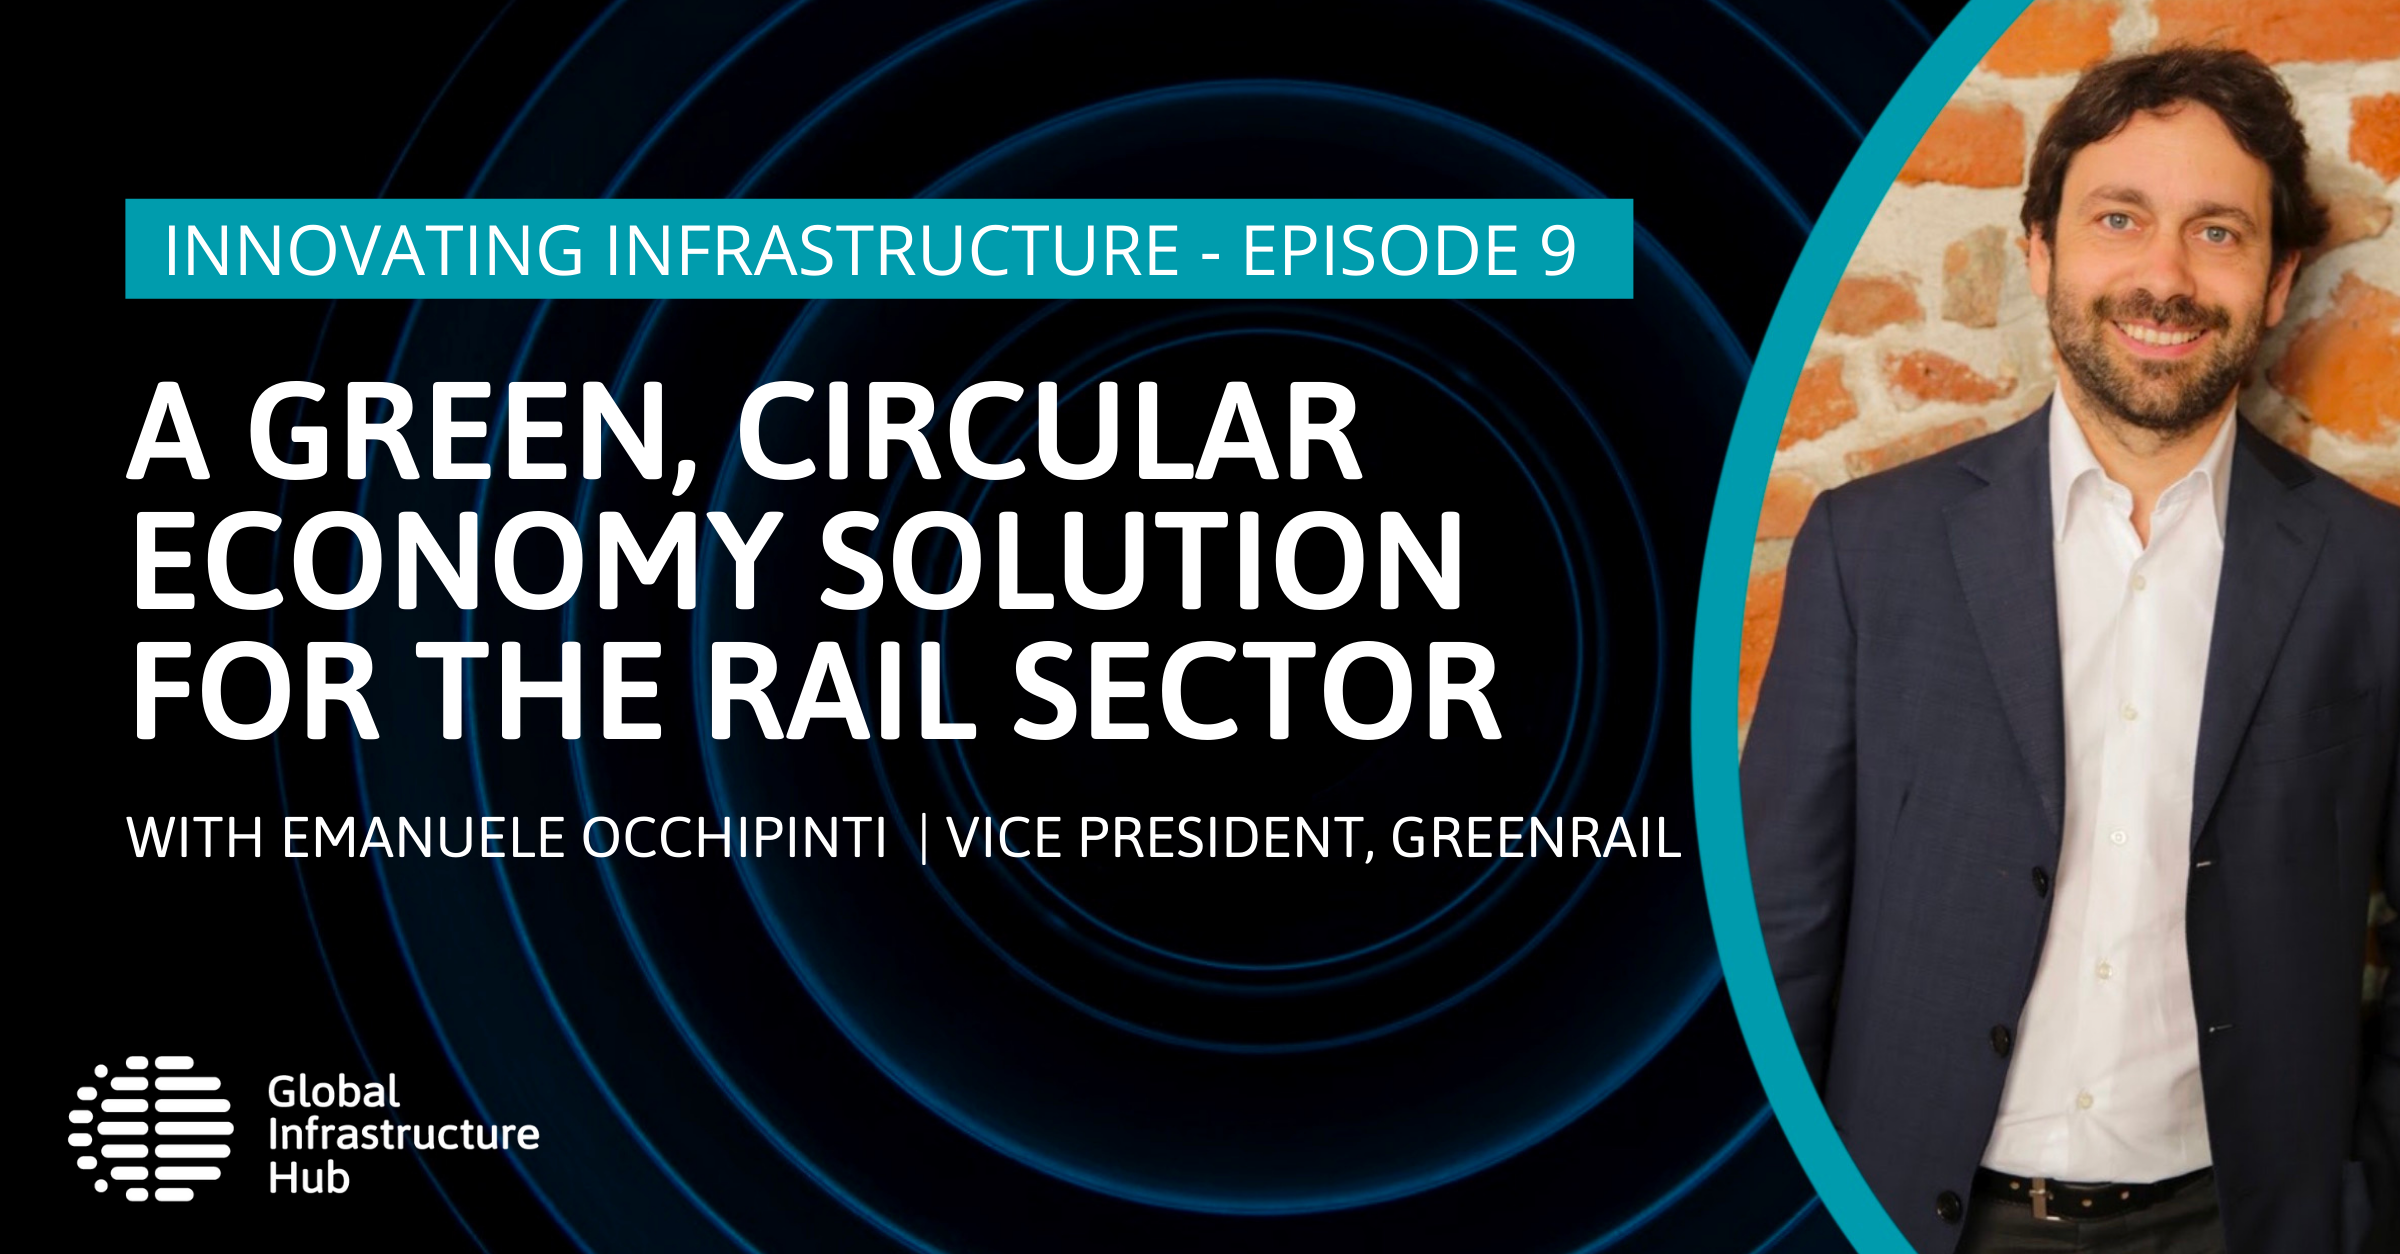 A green, circular economy solution for the rail sector